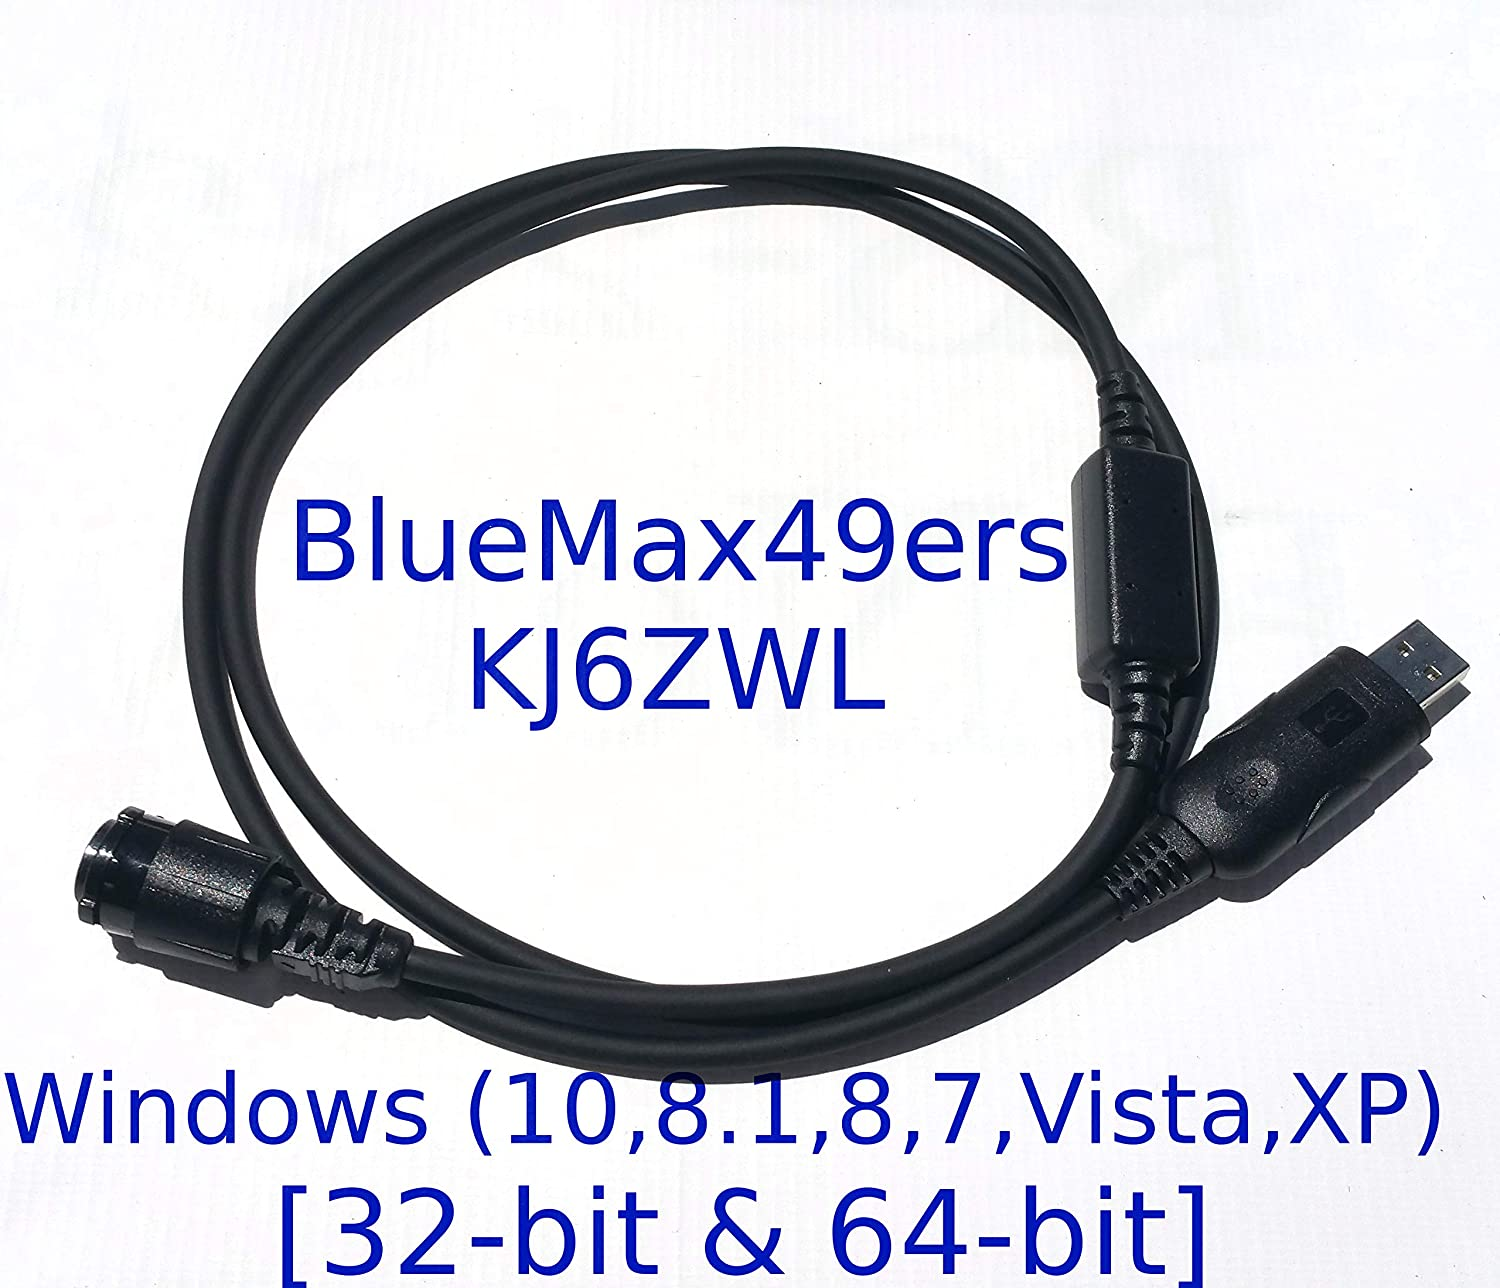 BlueMax49ers Programming Cable and CPS Installation Support for Motorola Radio Models DM4400 DM4600 DM4601 XPR4300 XPR4350 XPR4380 XPR4550 XPR4580 XPR5350 XPR5380 XPR5550 XPR5580 HKN6184C